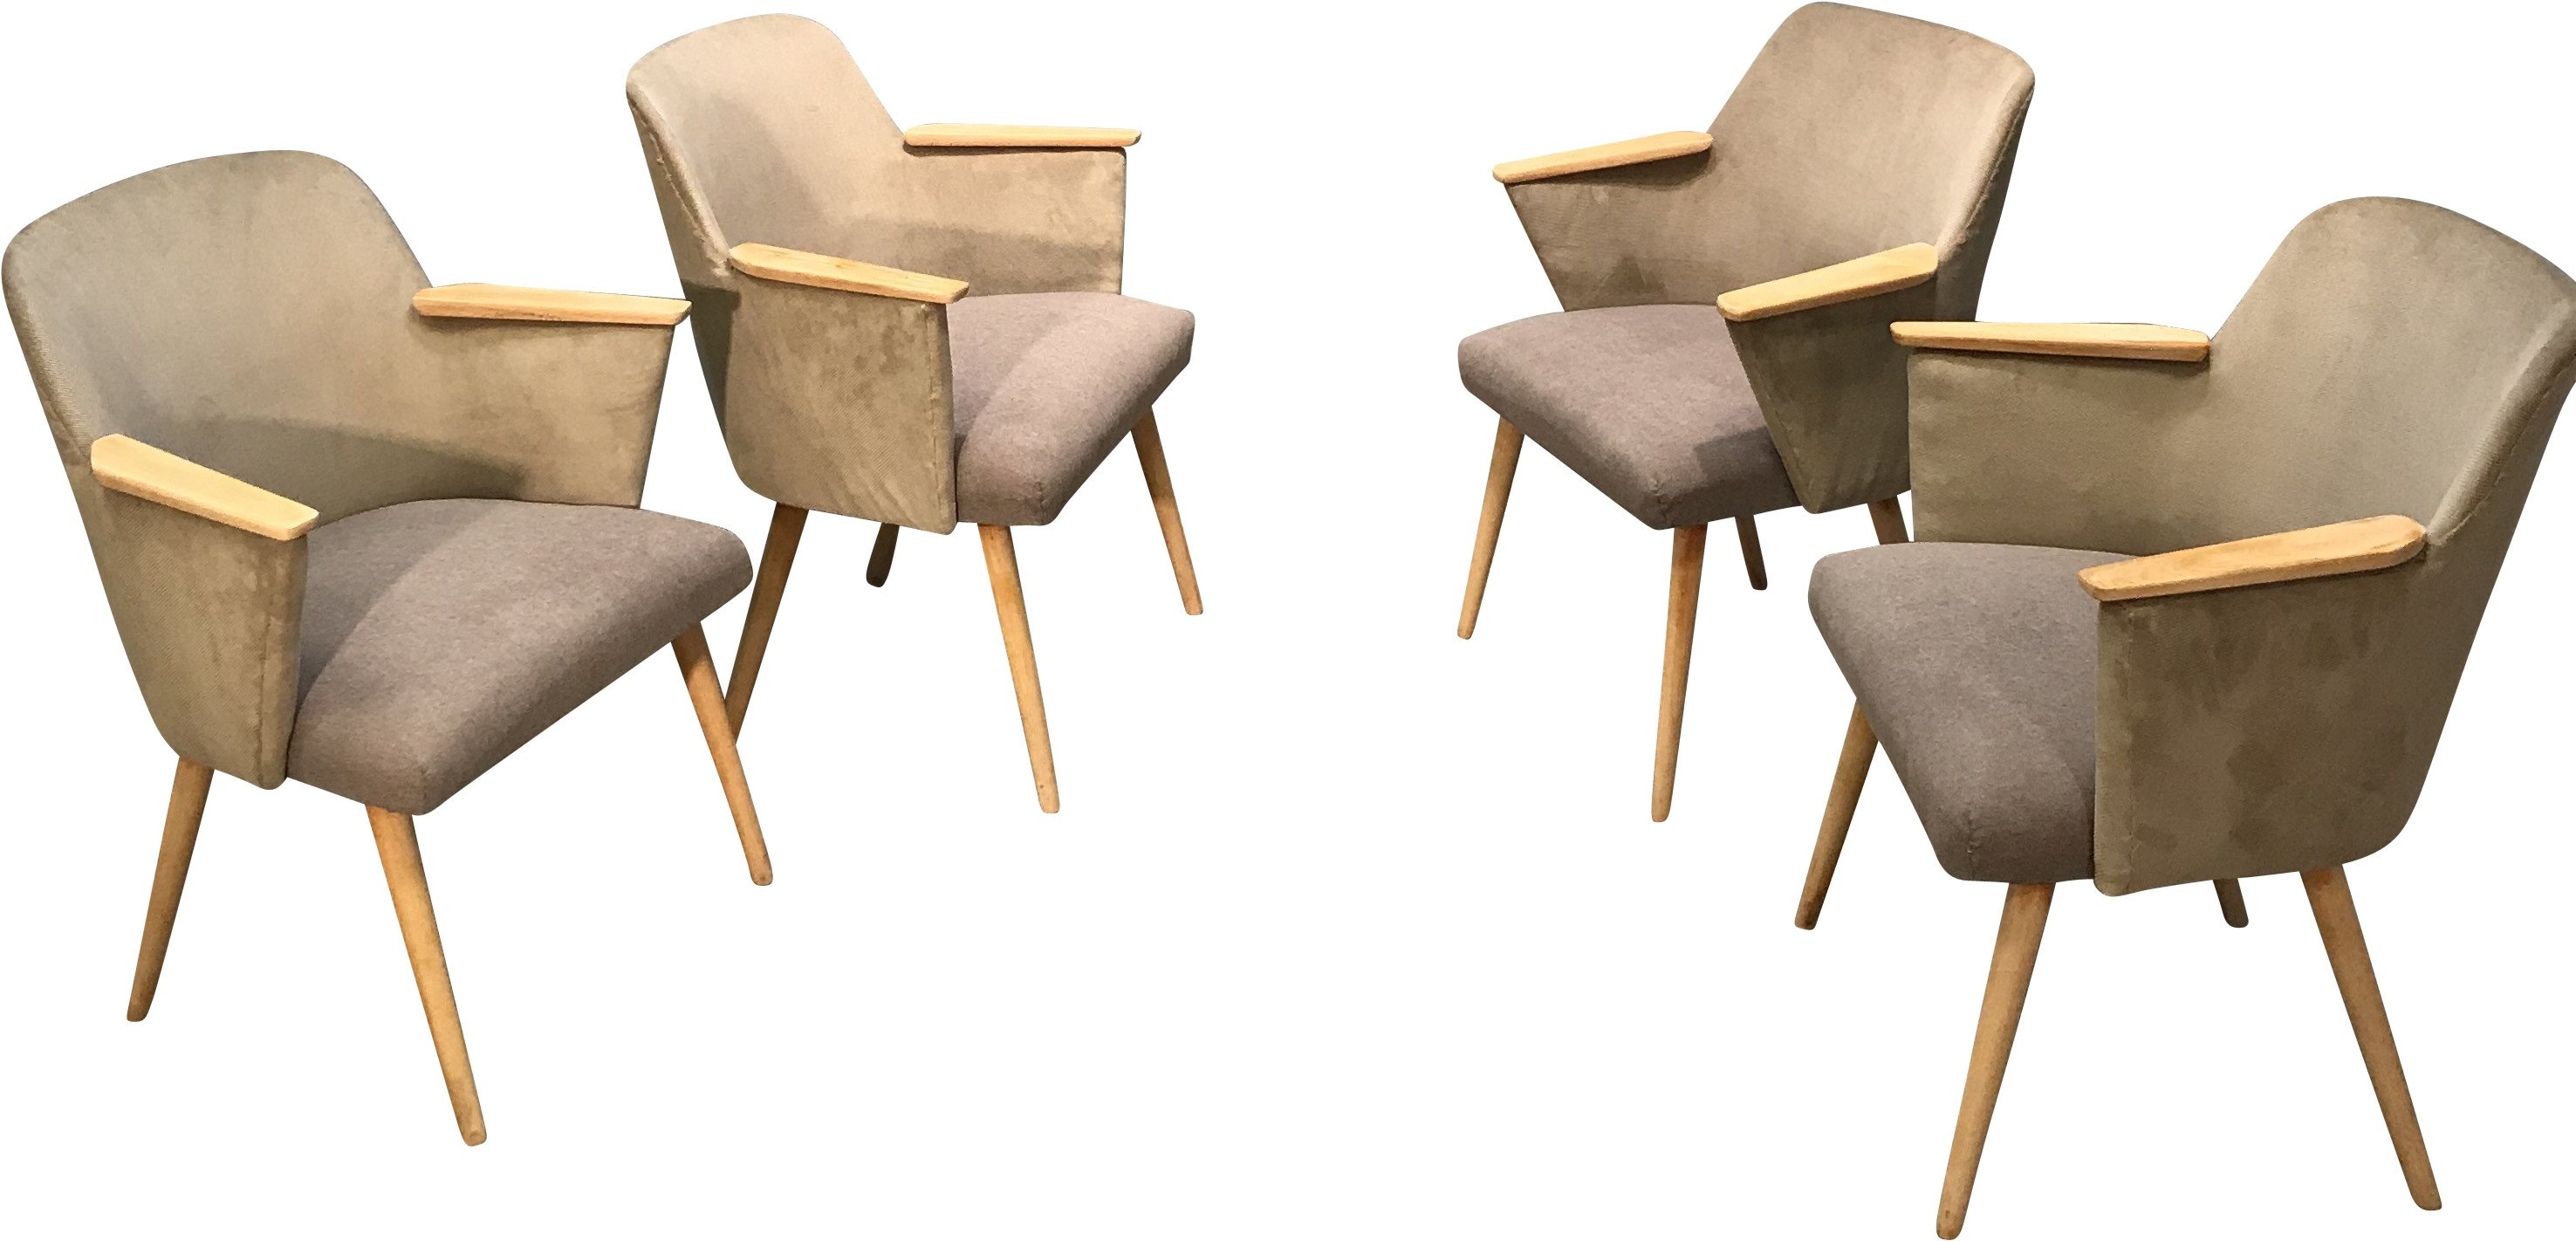 Set of Four Armchairs, Casala, 1960s